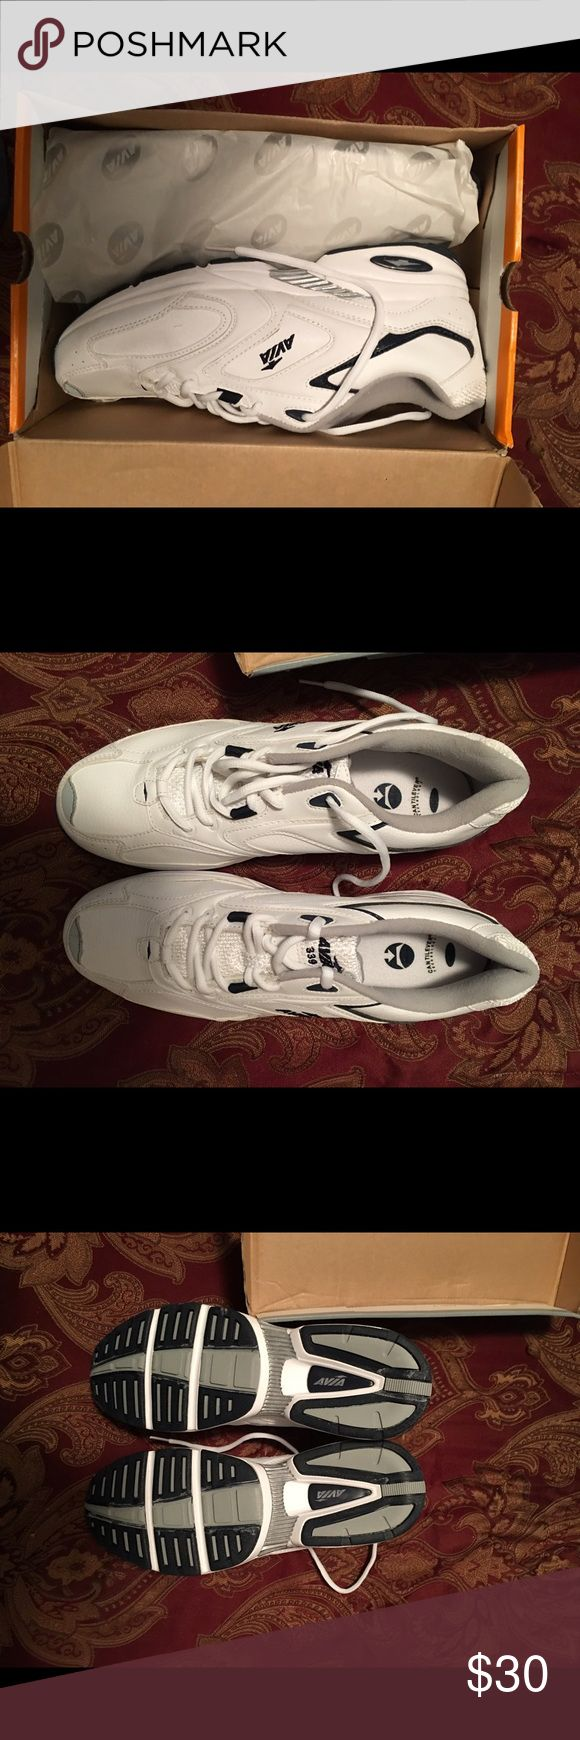 AVIA Men's Sneakers BRAND NEW WITH BOX! Avia Shoes Sneakers